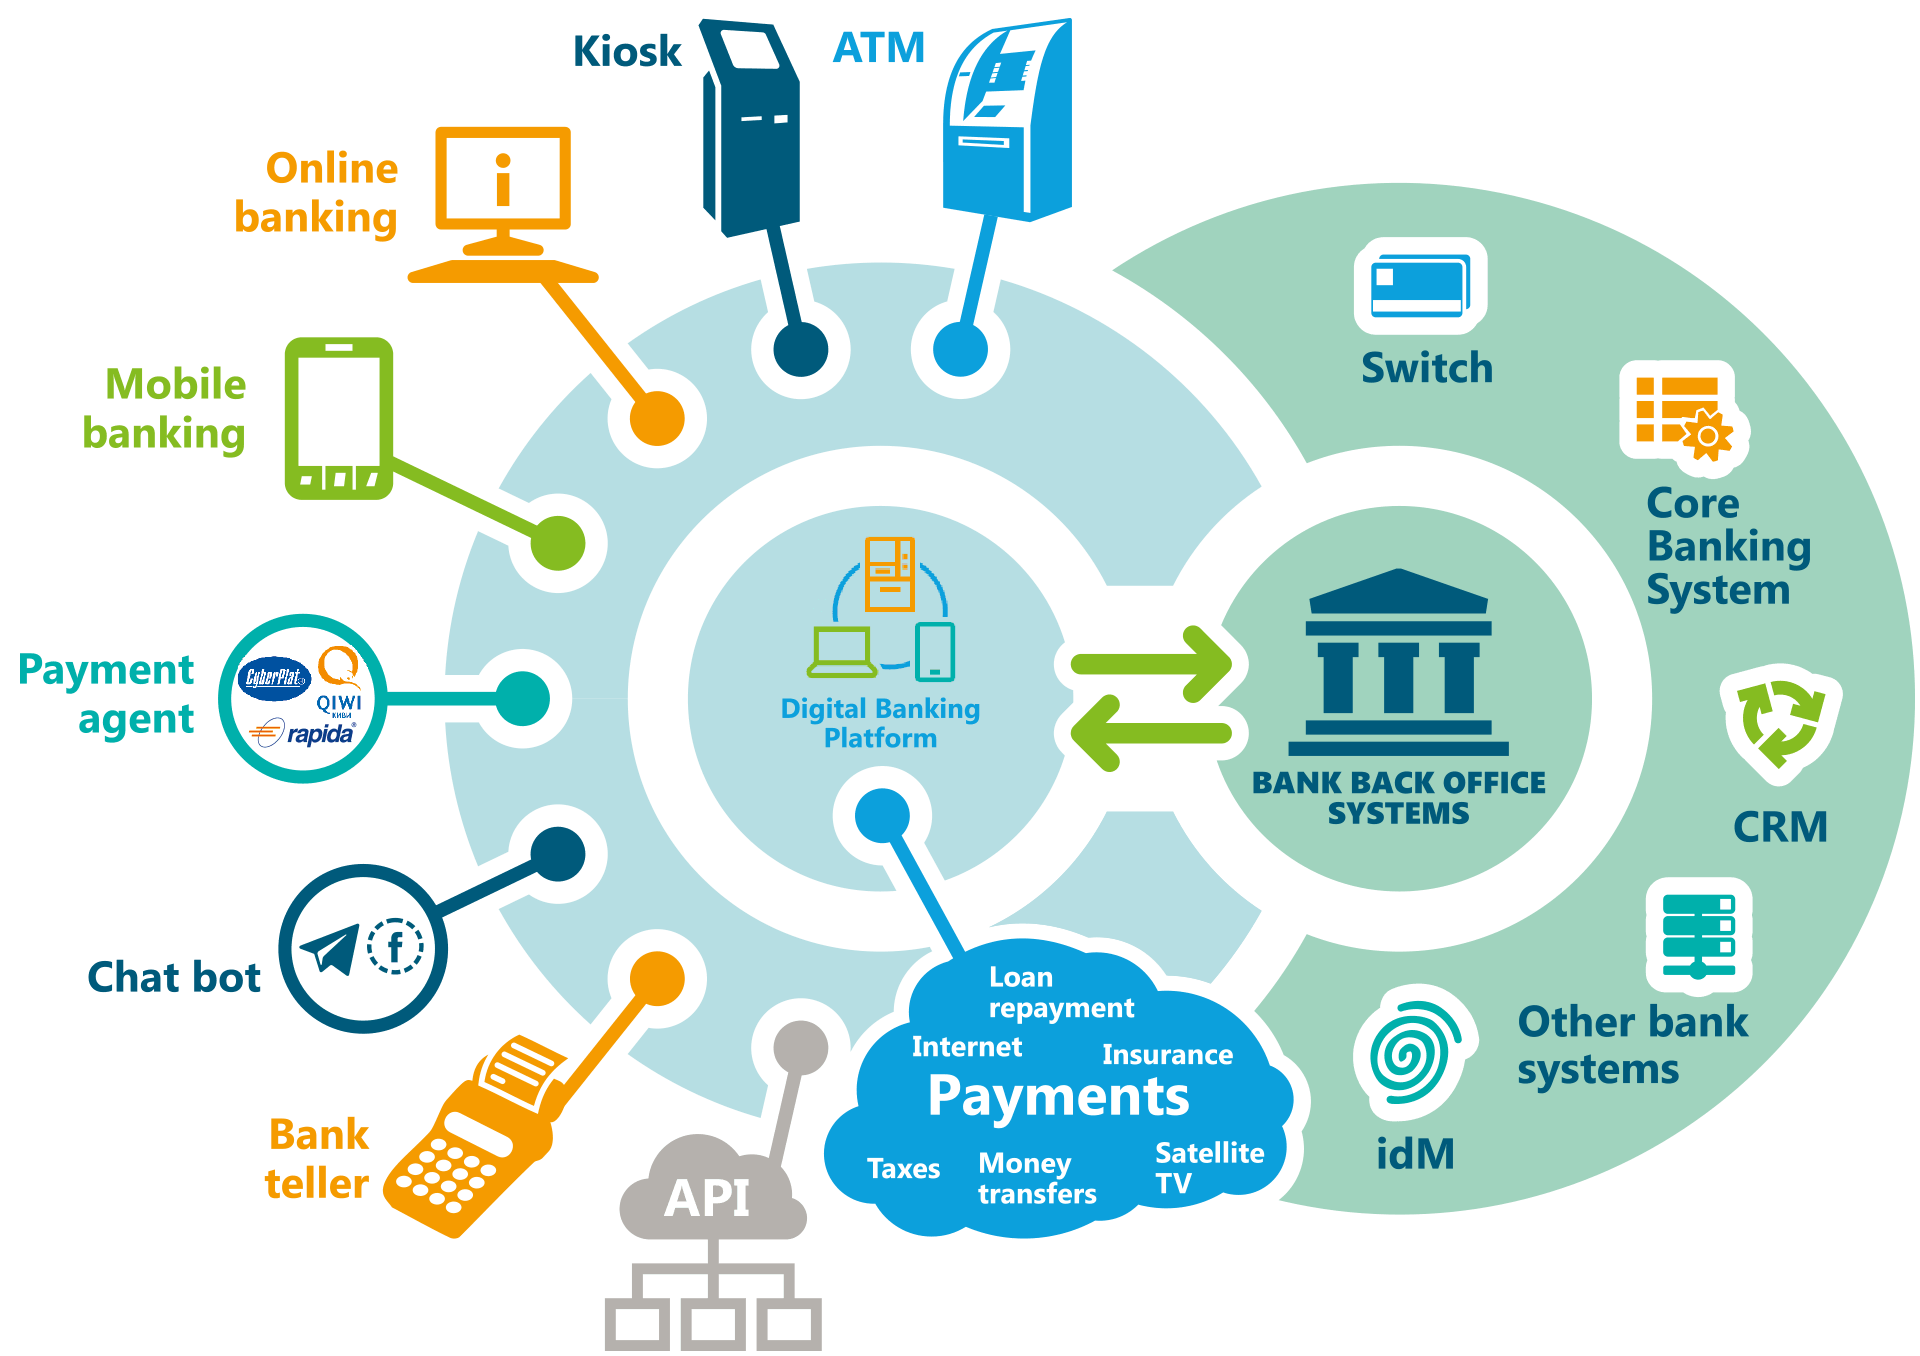 core banking system diagram